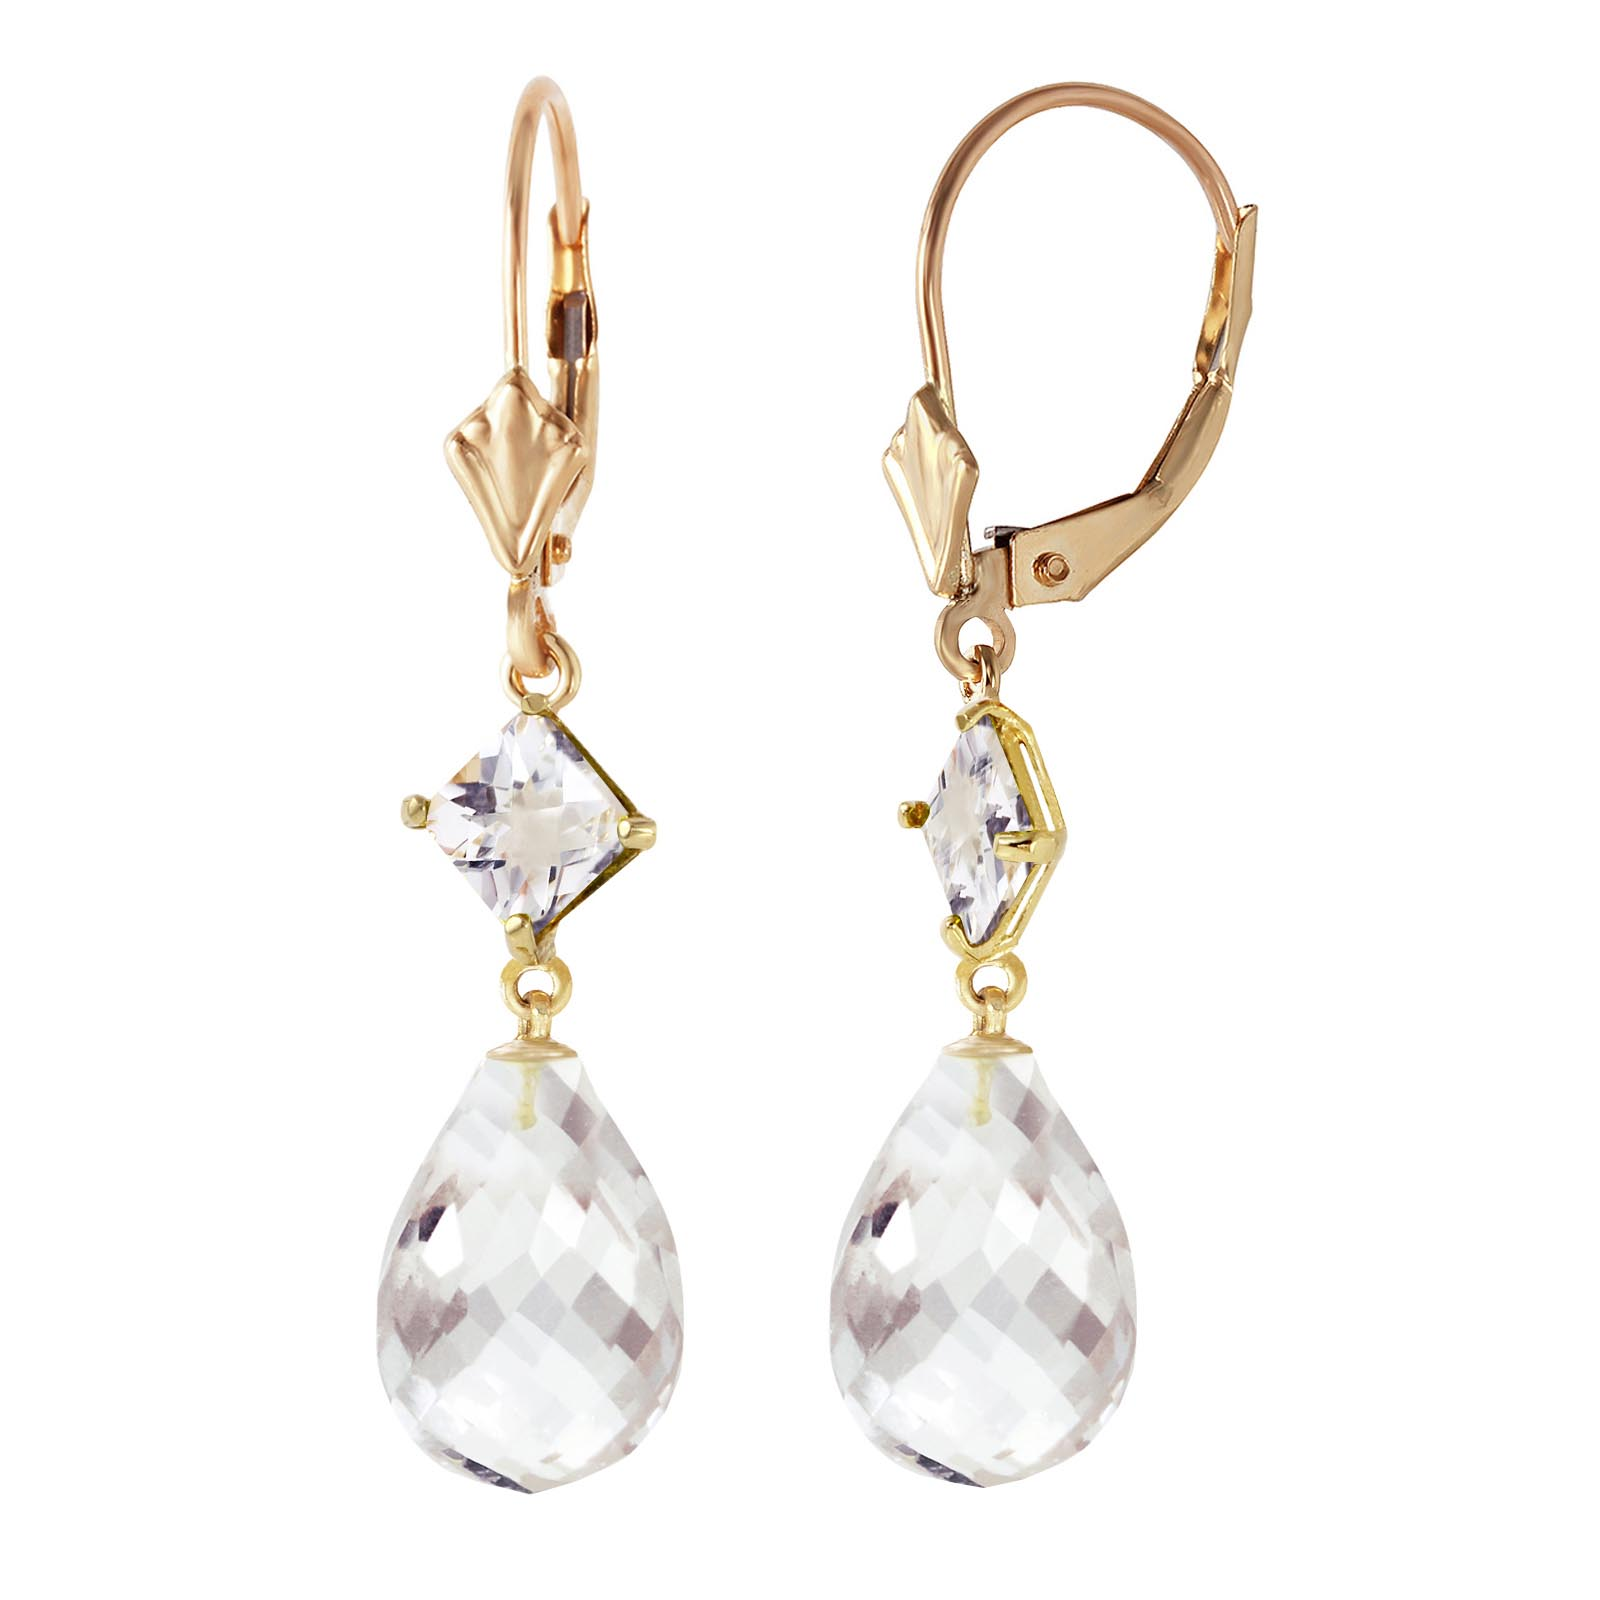 White Topaz Drop Earrings 11 ctw in 9ct Gold